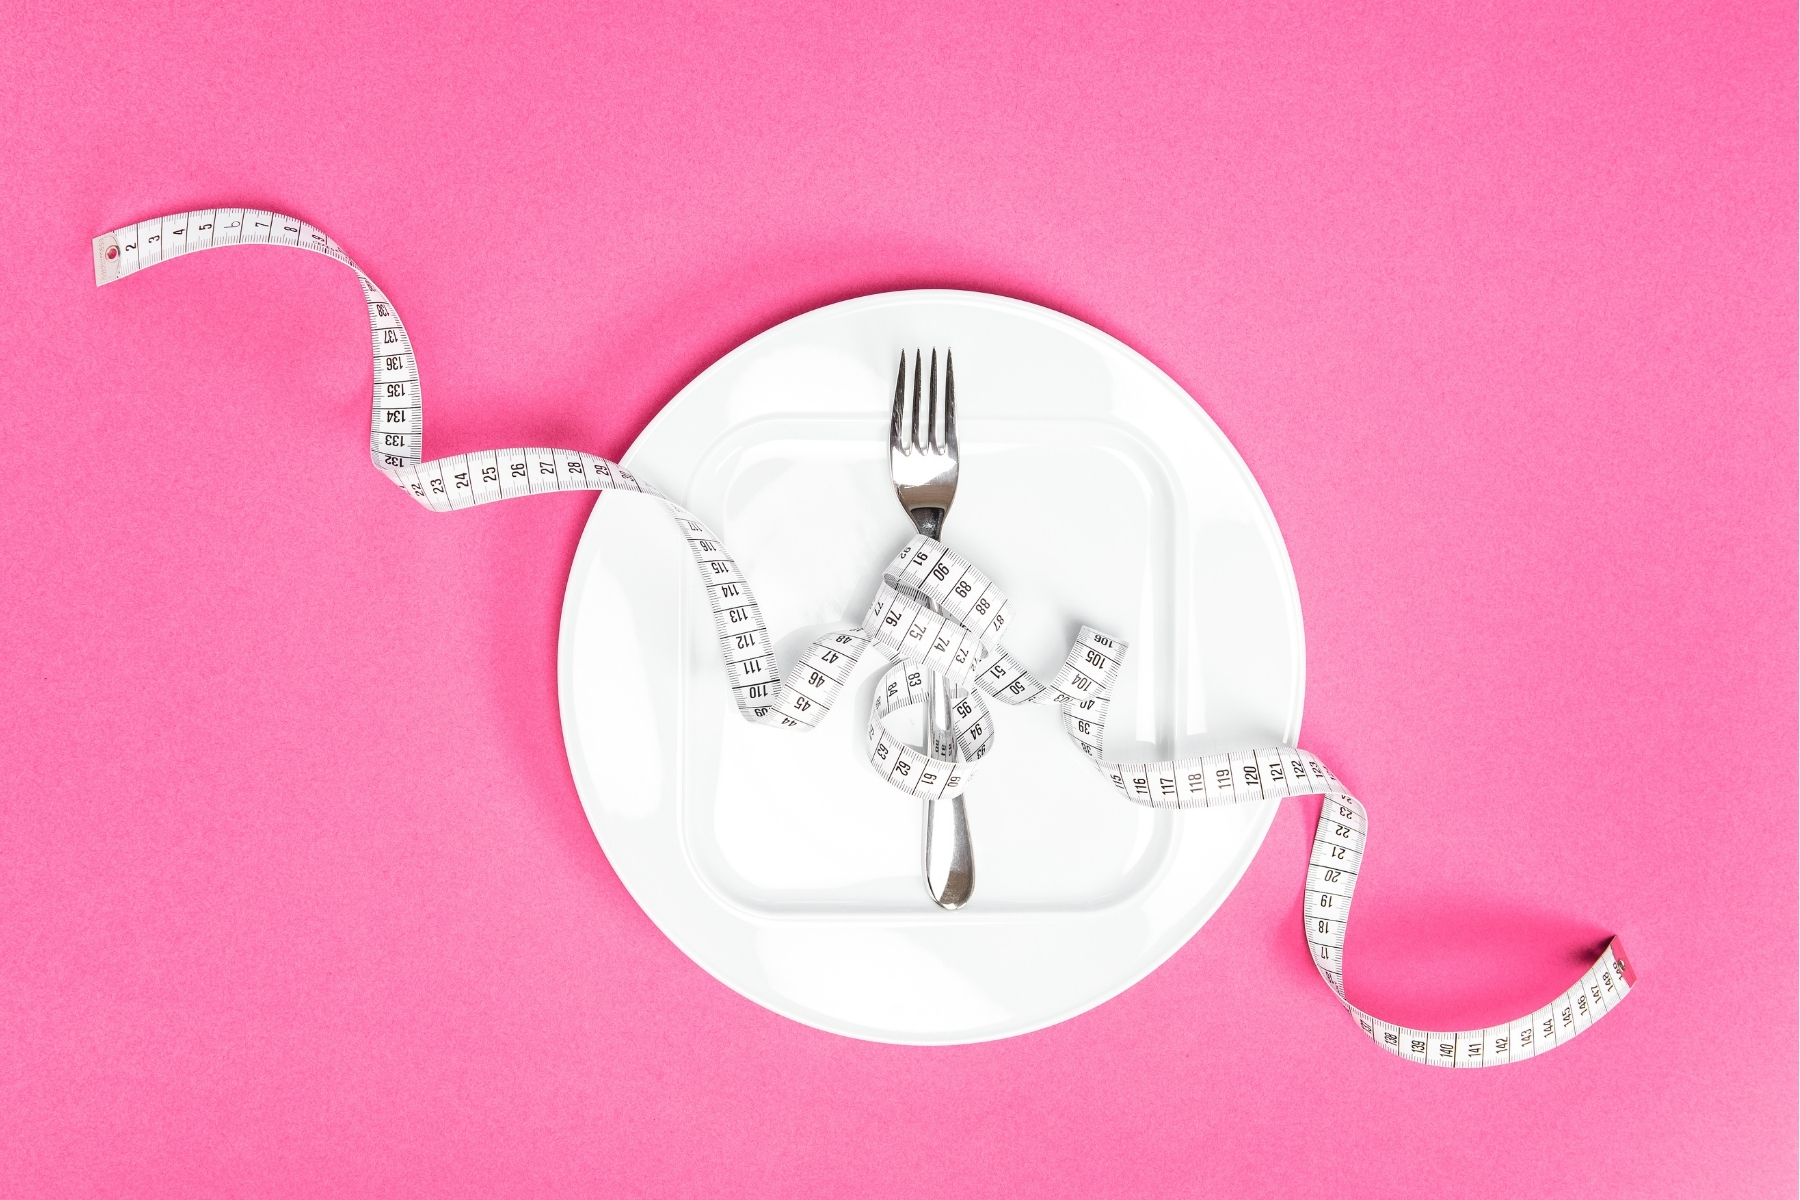 Image representing diet culture and not intuitive eating: a white dinner plate with a fork wrapped in a measuring tape on a pink background.